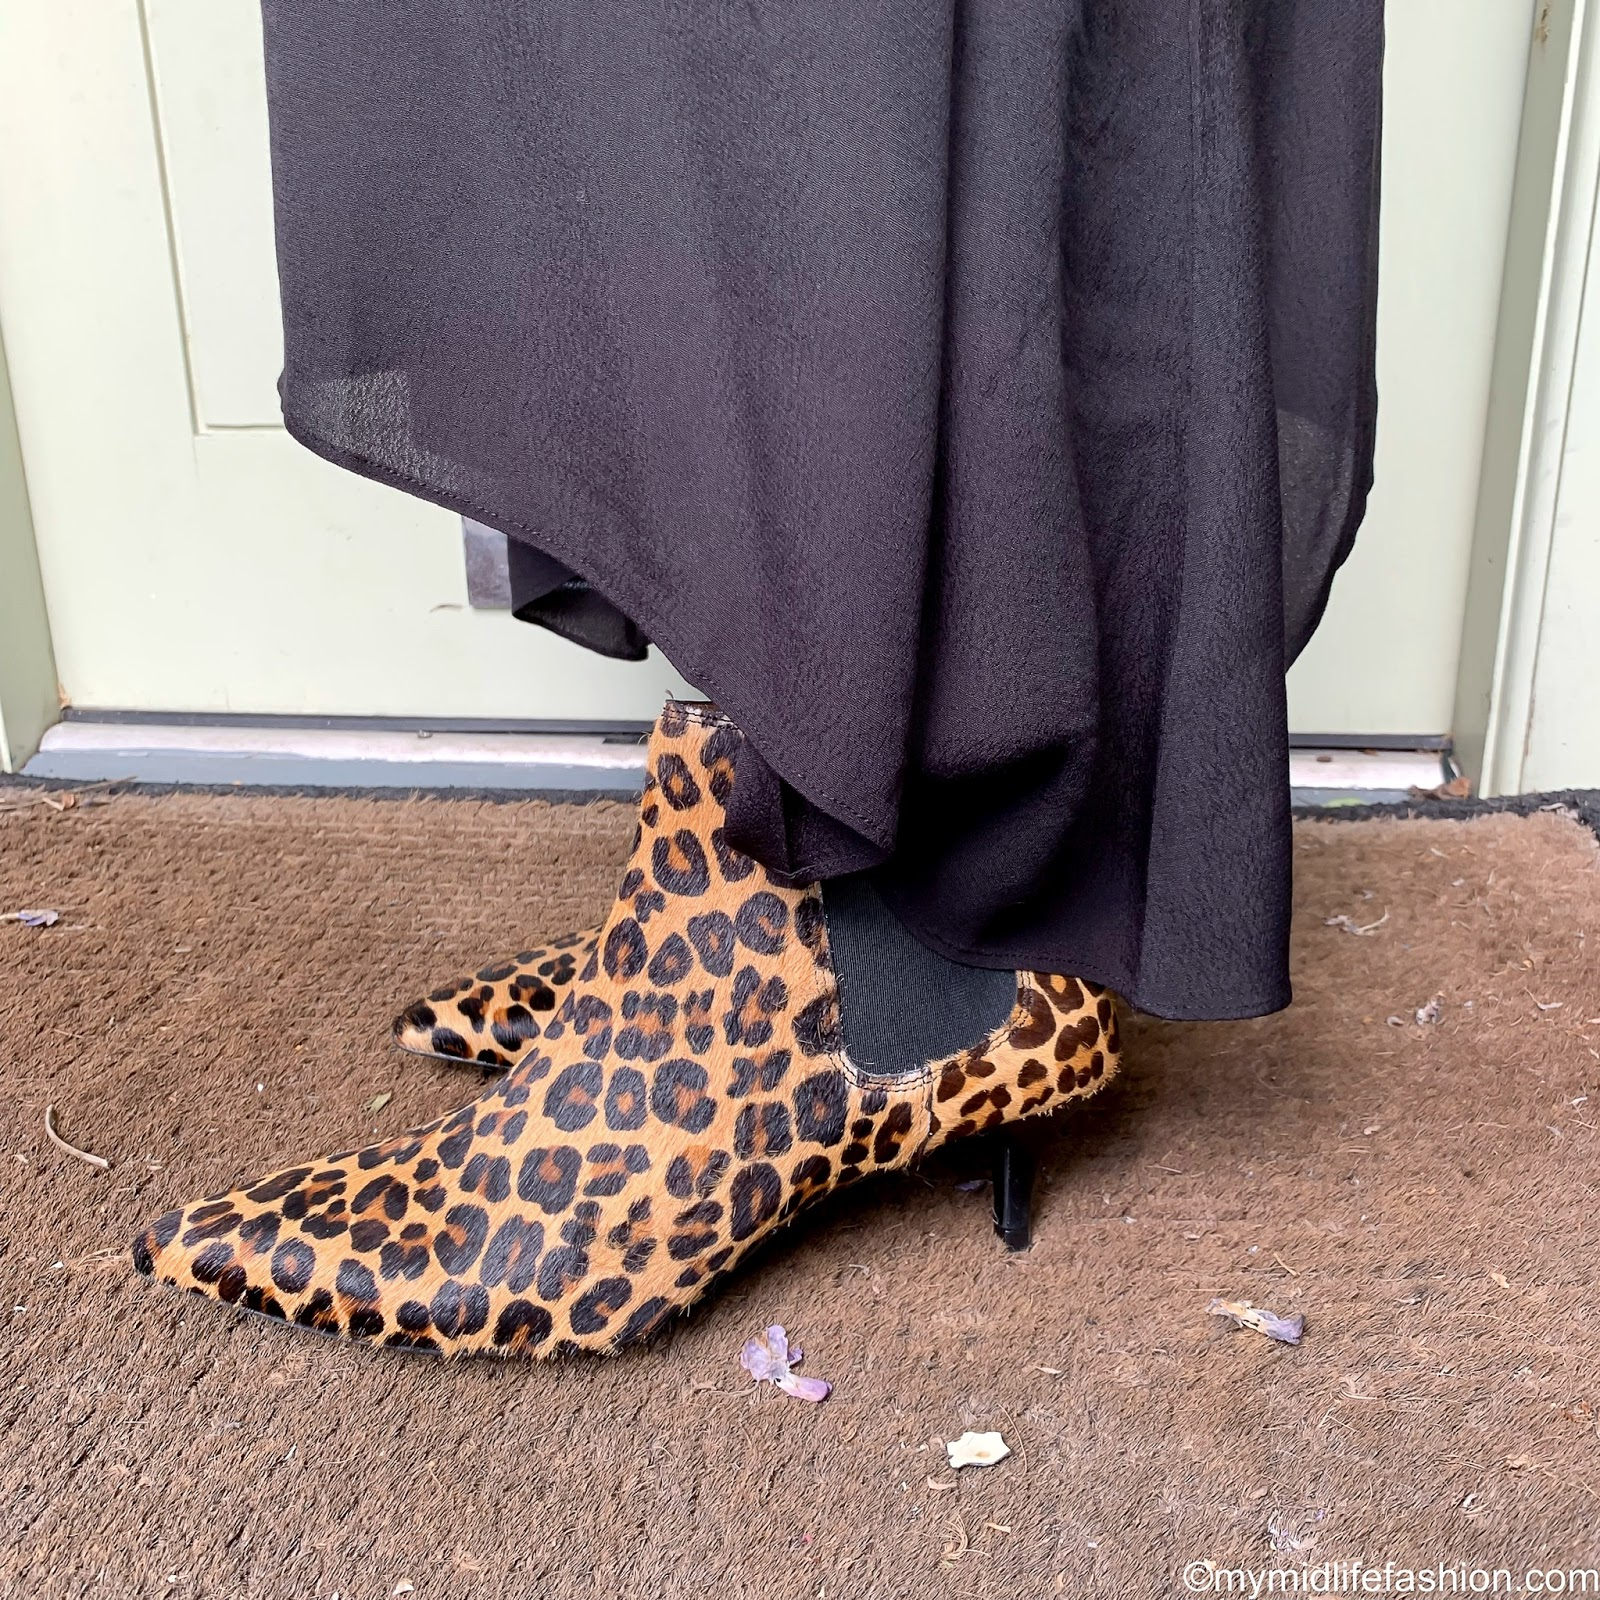 my midlife fashion, Cabi clothing, Cabi clothing expedition jacket, Cabi clothing snap blouse, Cabi clothing cruise skirt, hush kitten heel leopard print ankle boots, app leopard print clutch